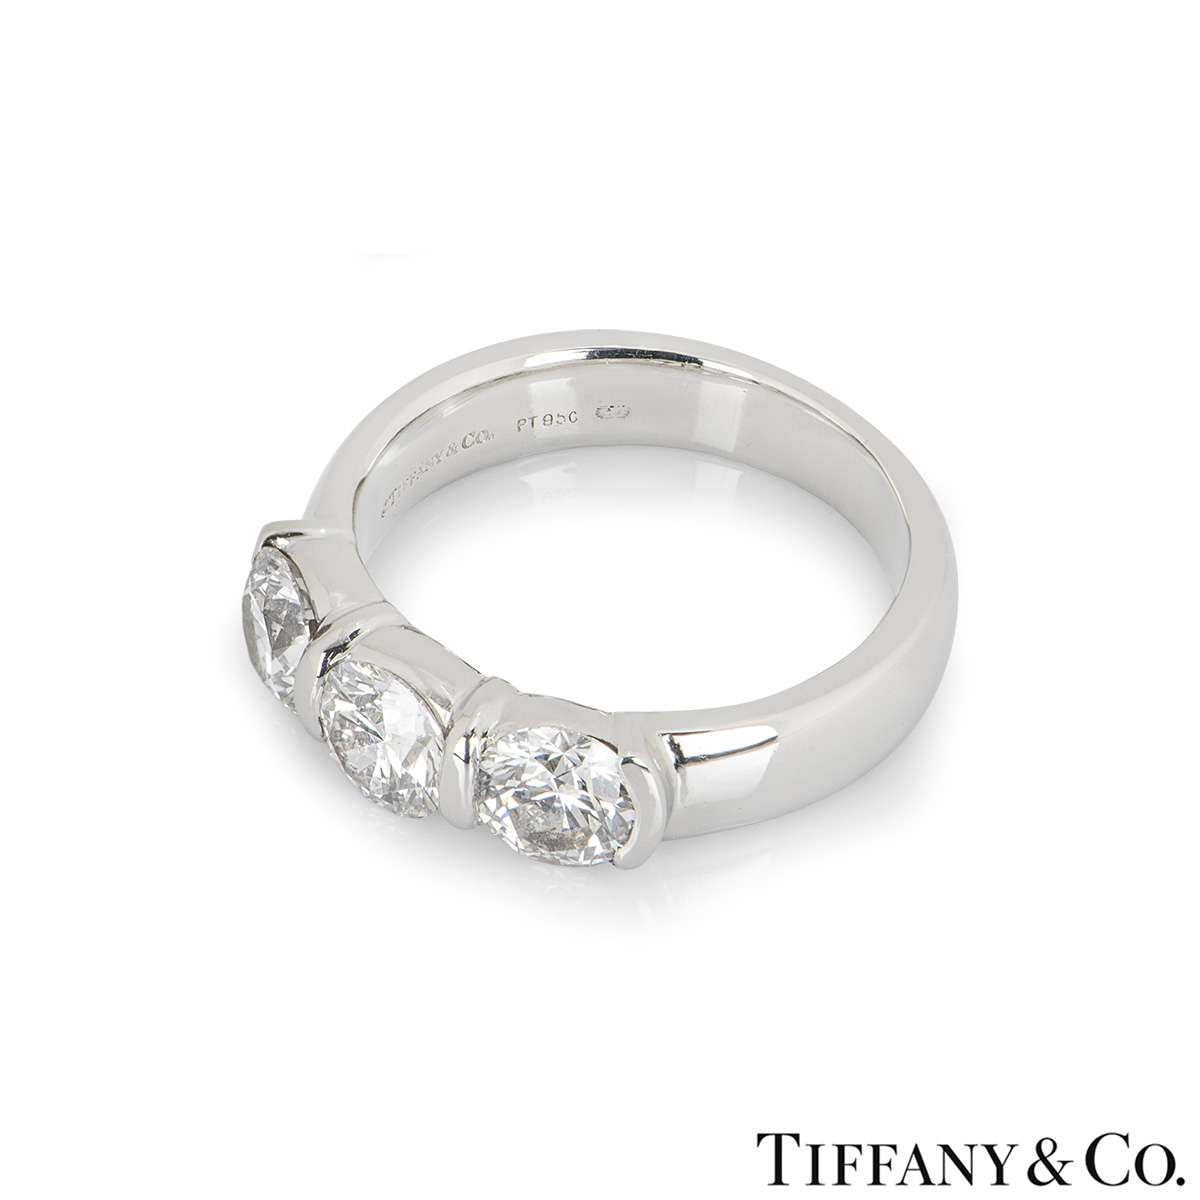 Tiffany & Co. Platinum Three Stone Diamond Ring